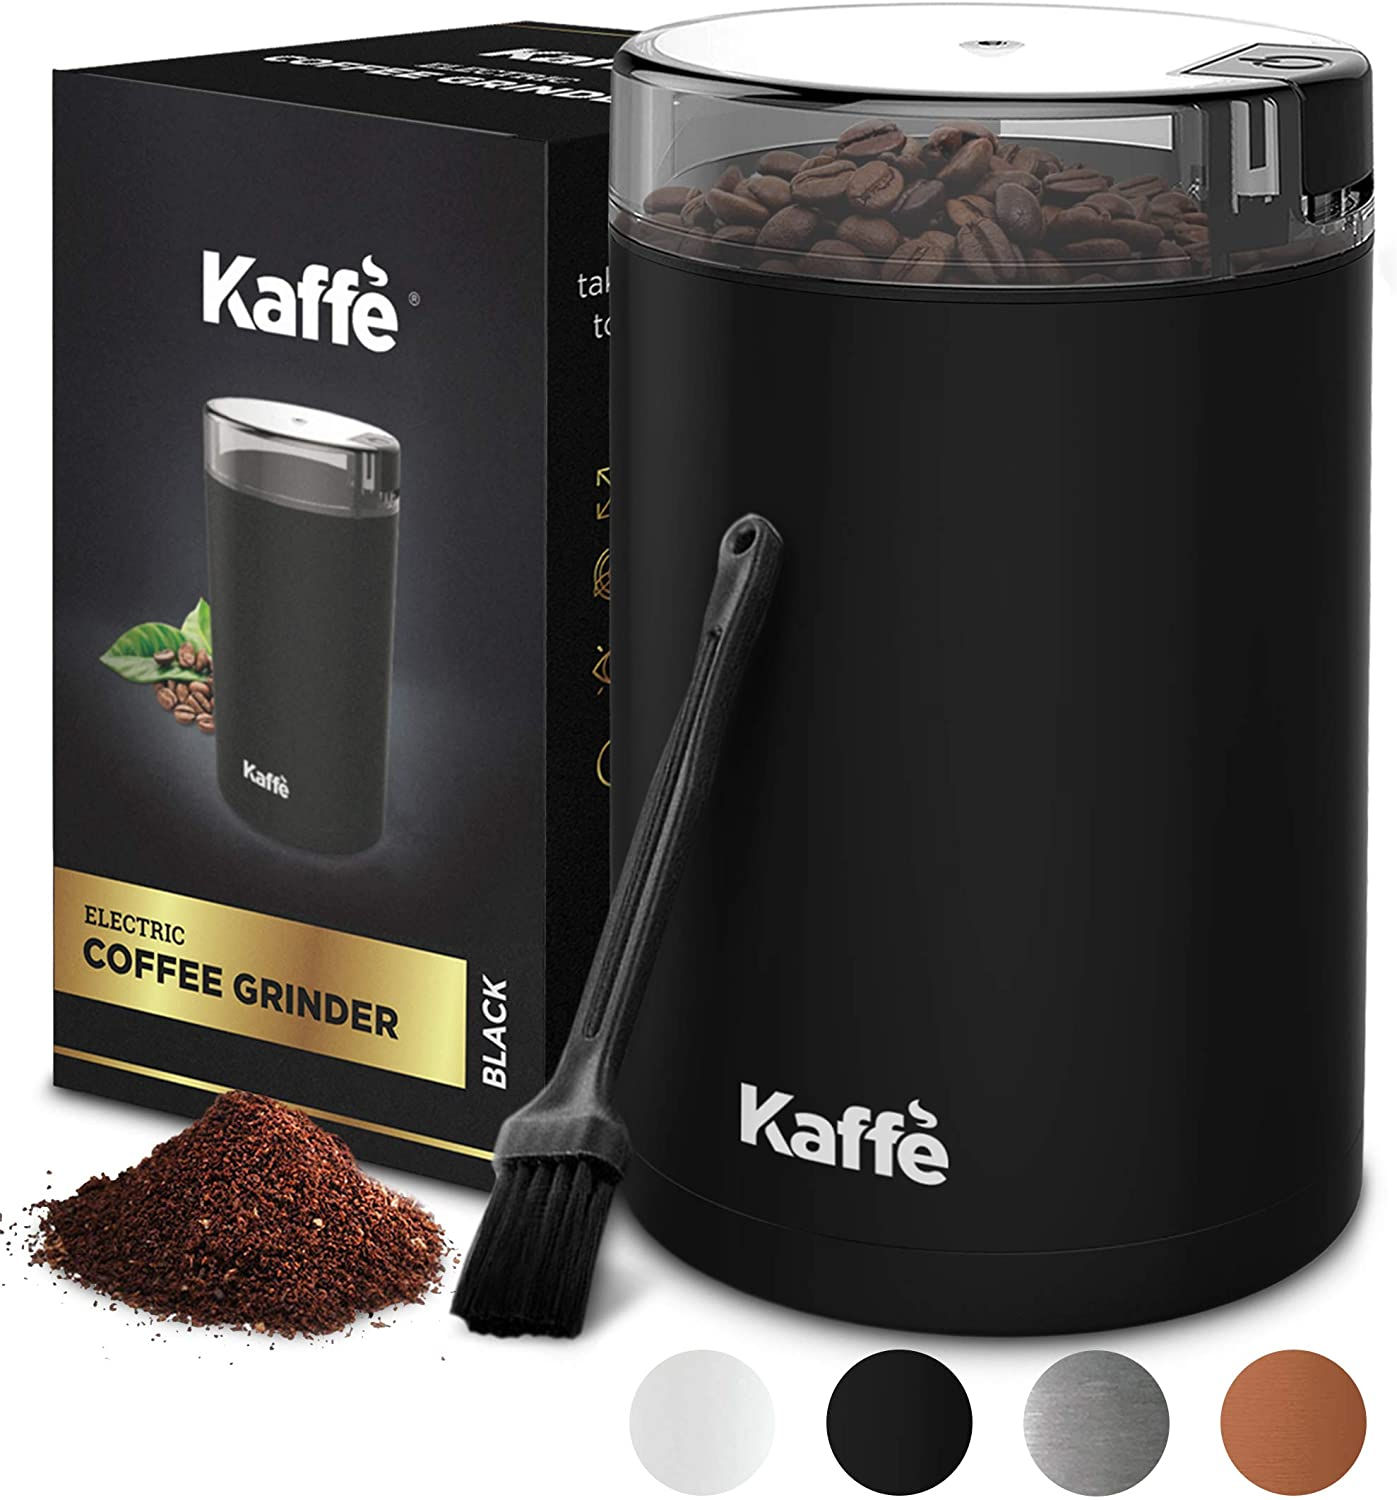 Kaffe Electric Coffee Grinder - Black - 3oz Capacity with Easy On/Off Button. Cleaning Brush Included